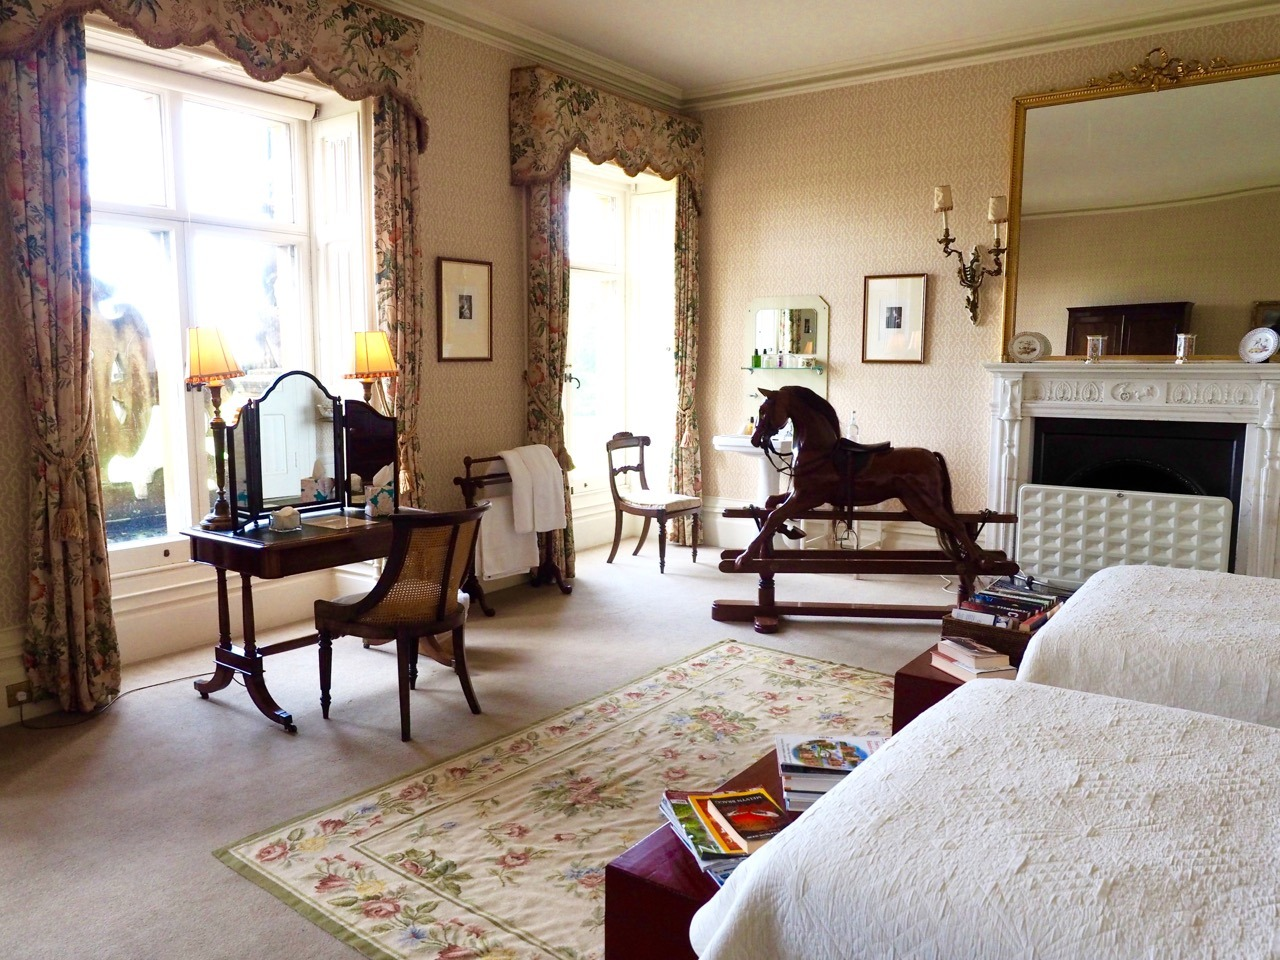 How To Visit Downton Abbey And Almost Have Tea With Lady